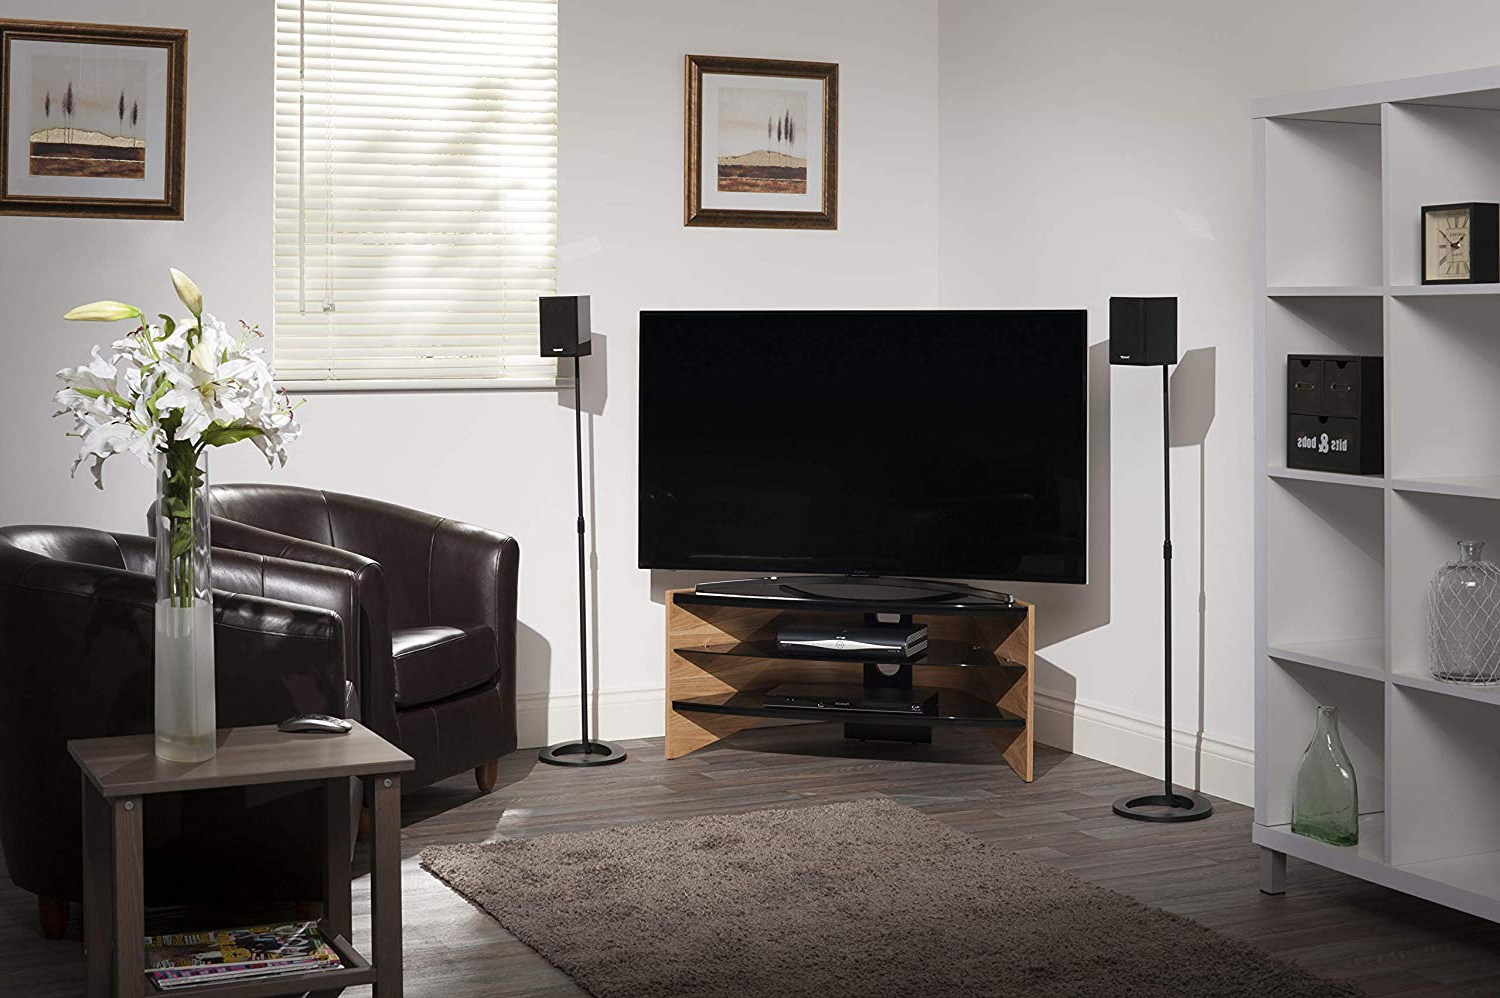 Techlink Riva Tv Stands With Regard To Recent Techlink Riva Corner Tv Stand With Curved Side Panels And Glass (View 19 of 20)